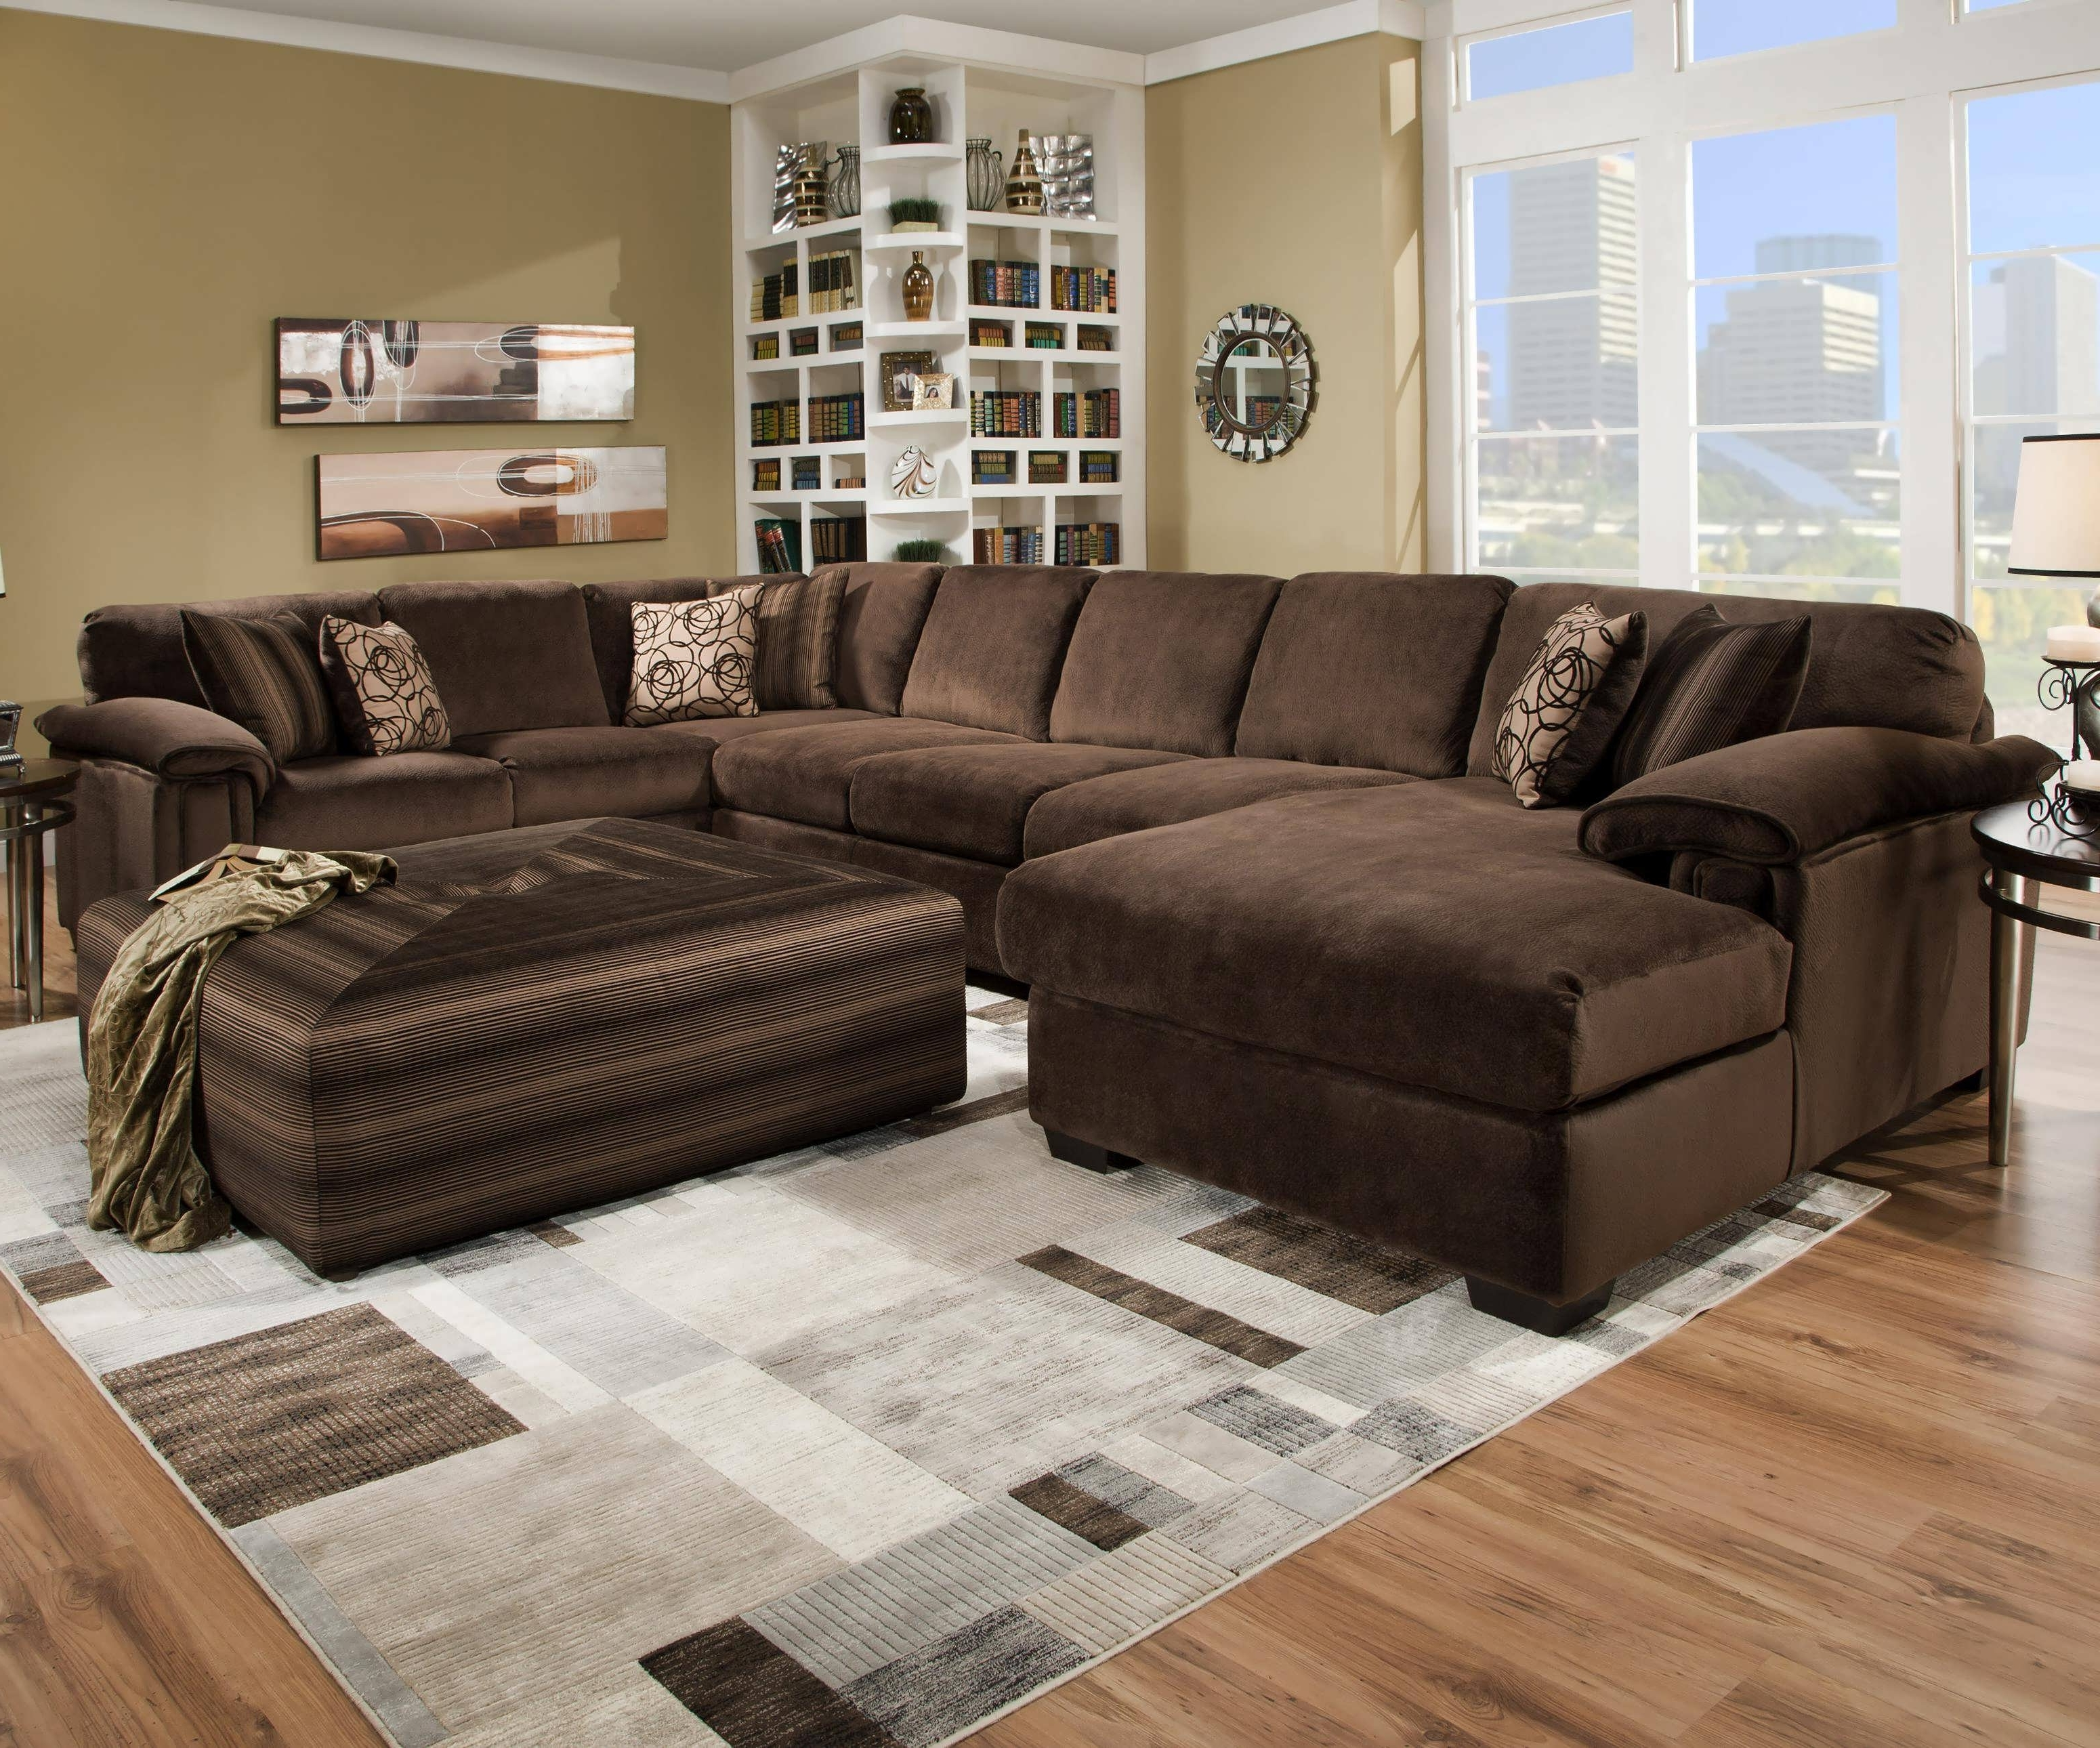 Well Known Deep Sectional Sofas With Chaise Within Sofa : Sectional Sofa For Small Spaces Couch With Chaise Deep (View 15 of 15)